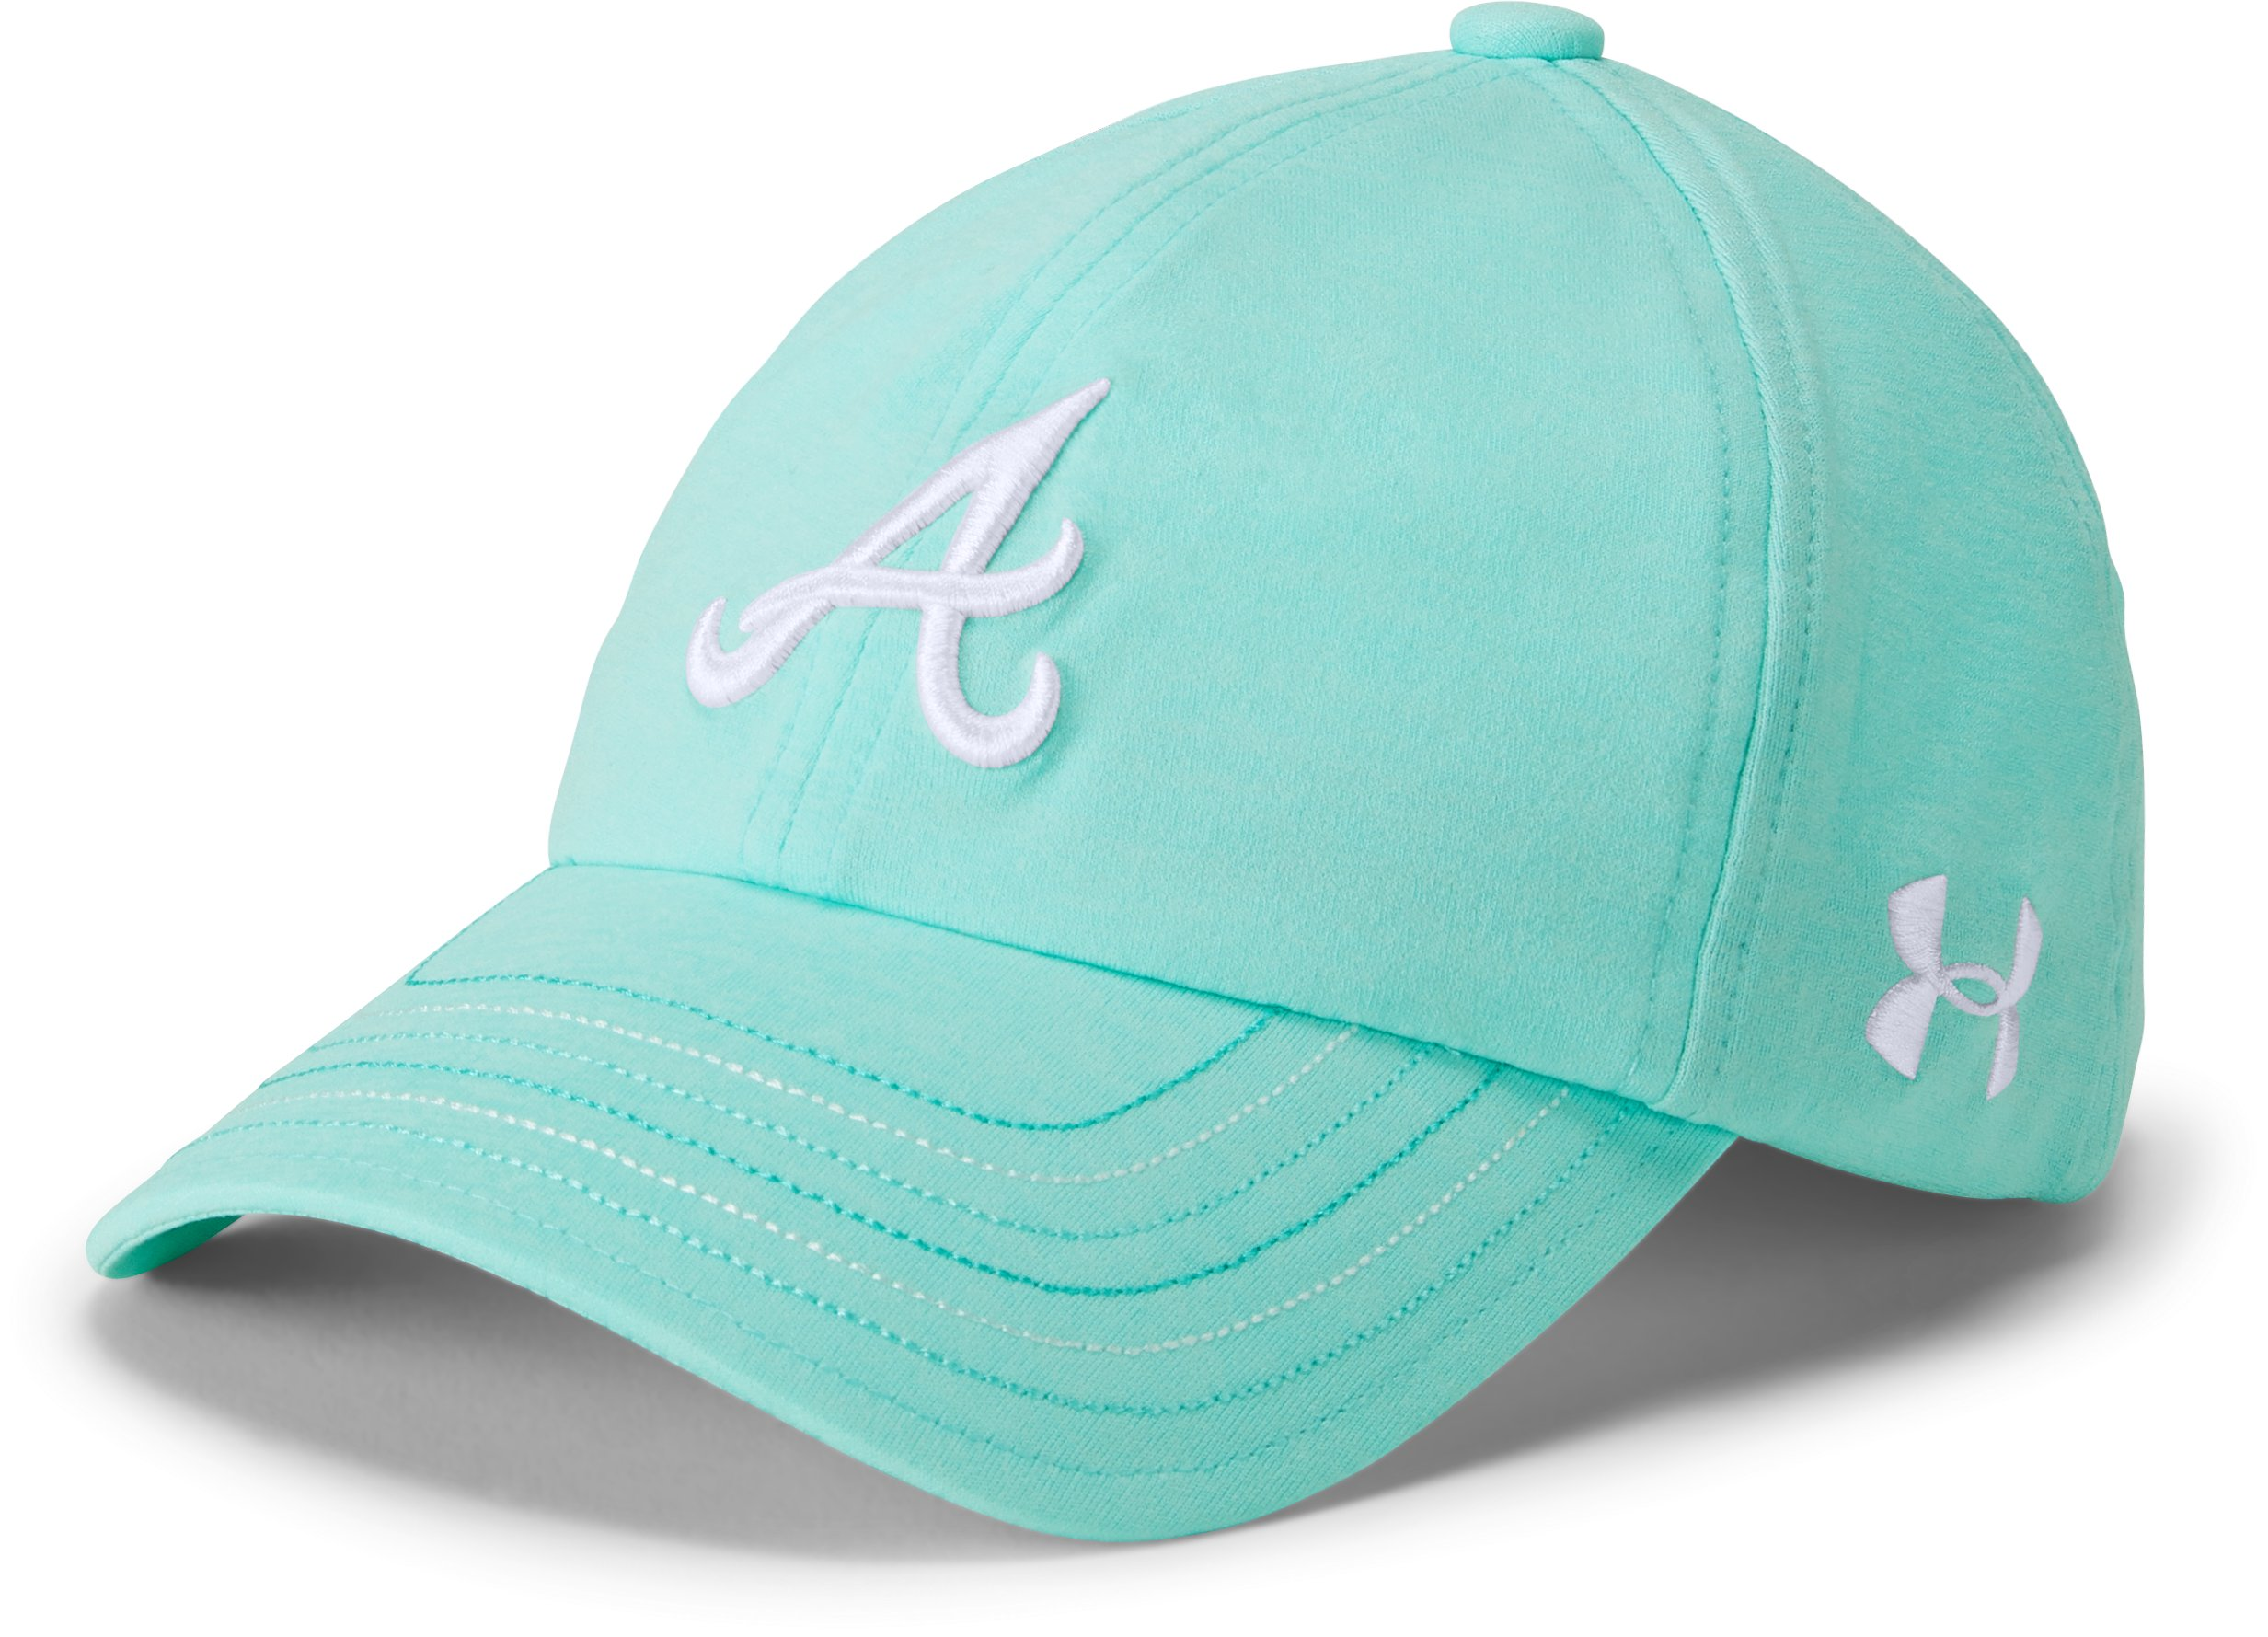 Girls' MLB Renegade Twist Cap, TROPICAL TIDE FADE HEATHER